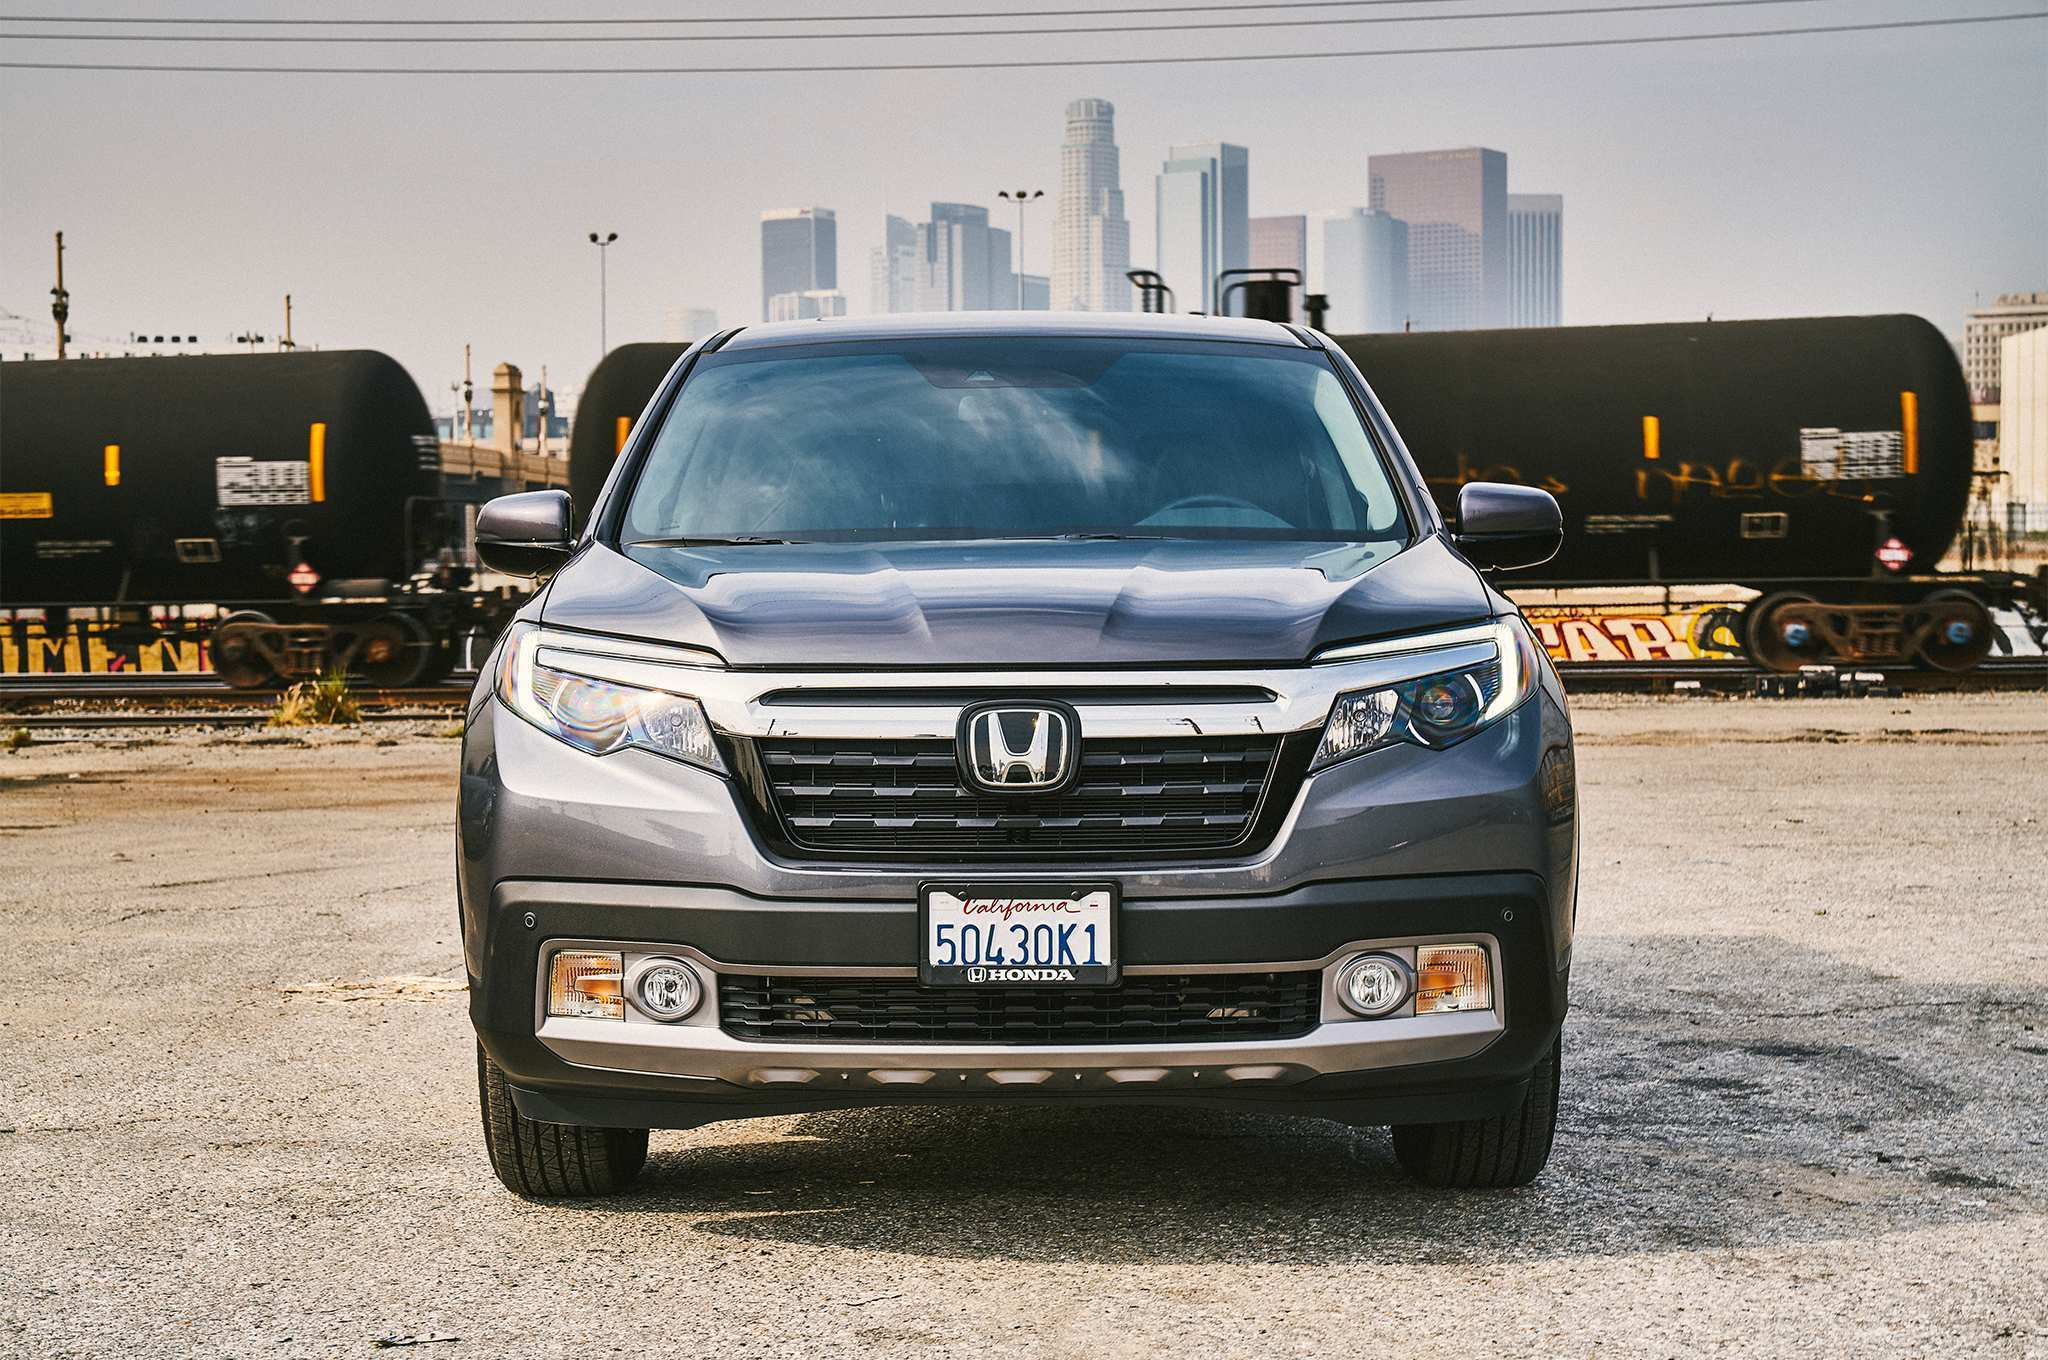 16 New 2019 Honda Ridgeline Rumors Interior for 2019 Honda Ridgeline Rumors